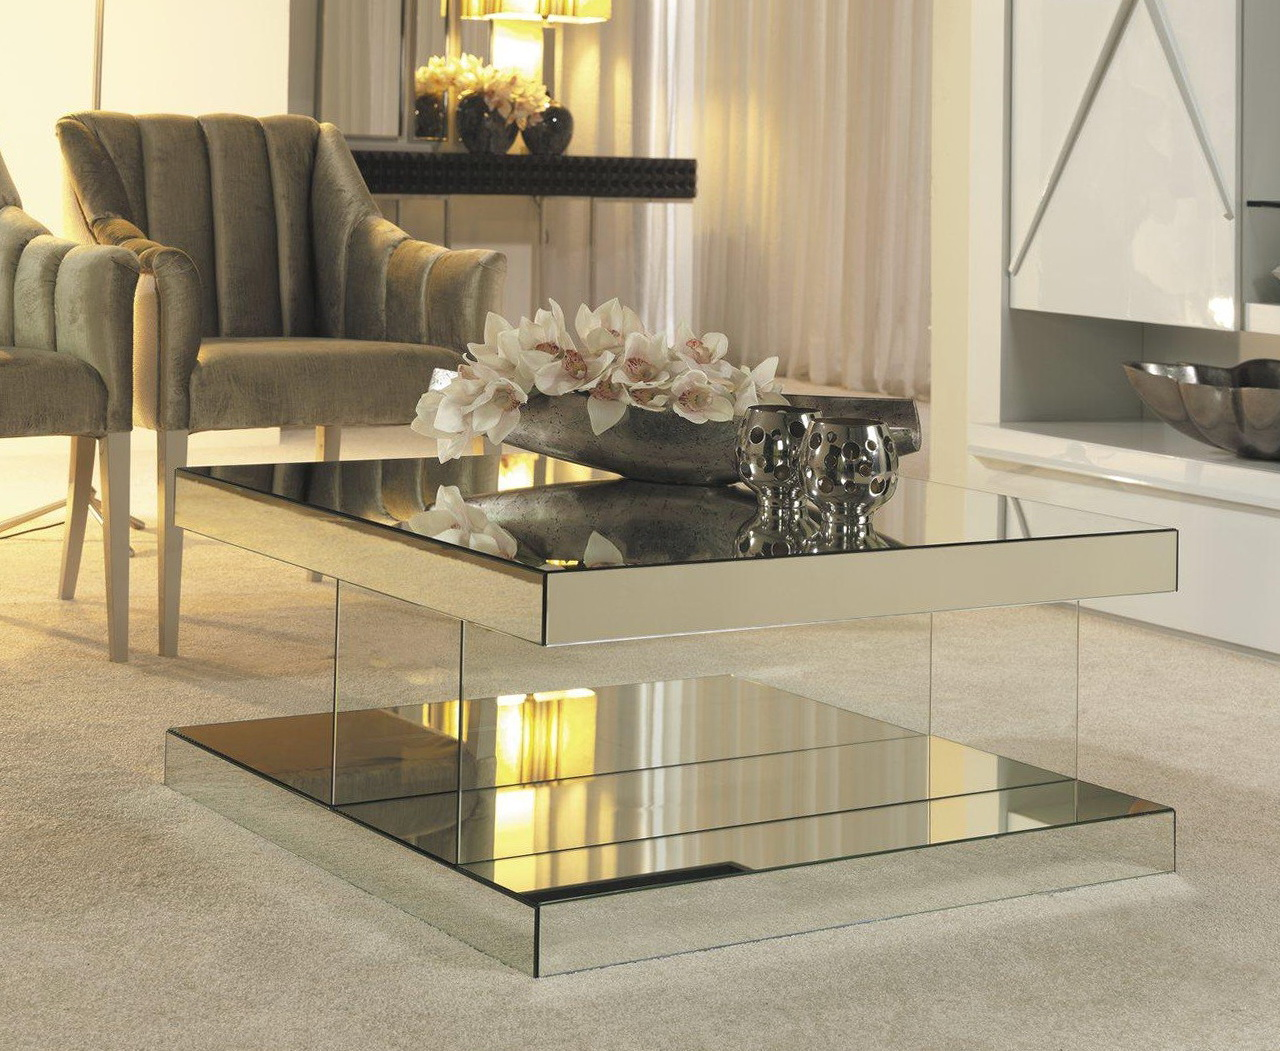 Mirrored coffee table with tall coffee table with art deco coffee table with foldable coffee table